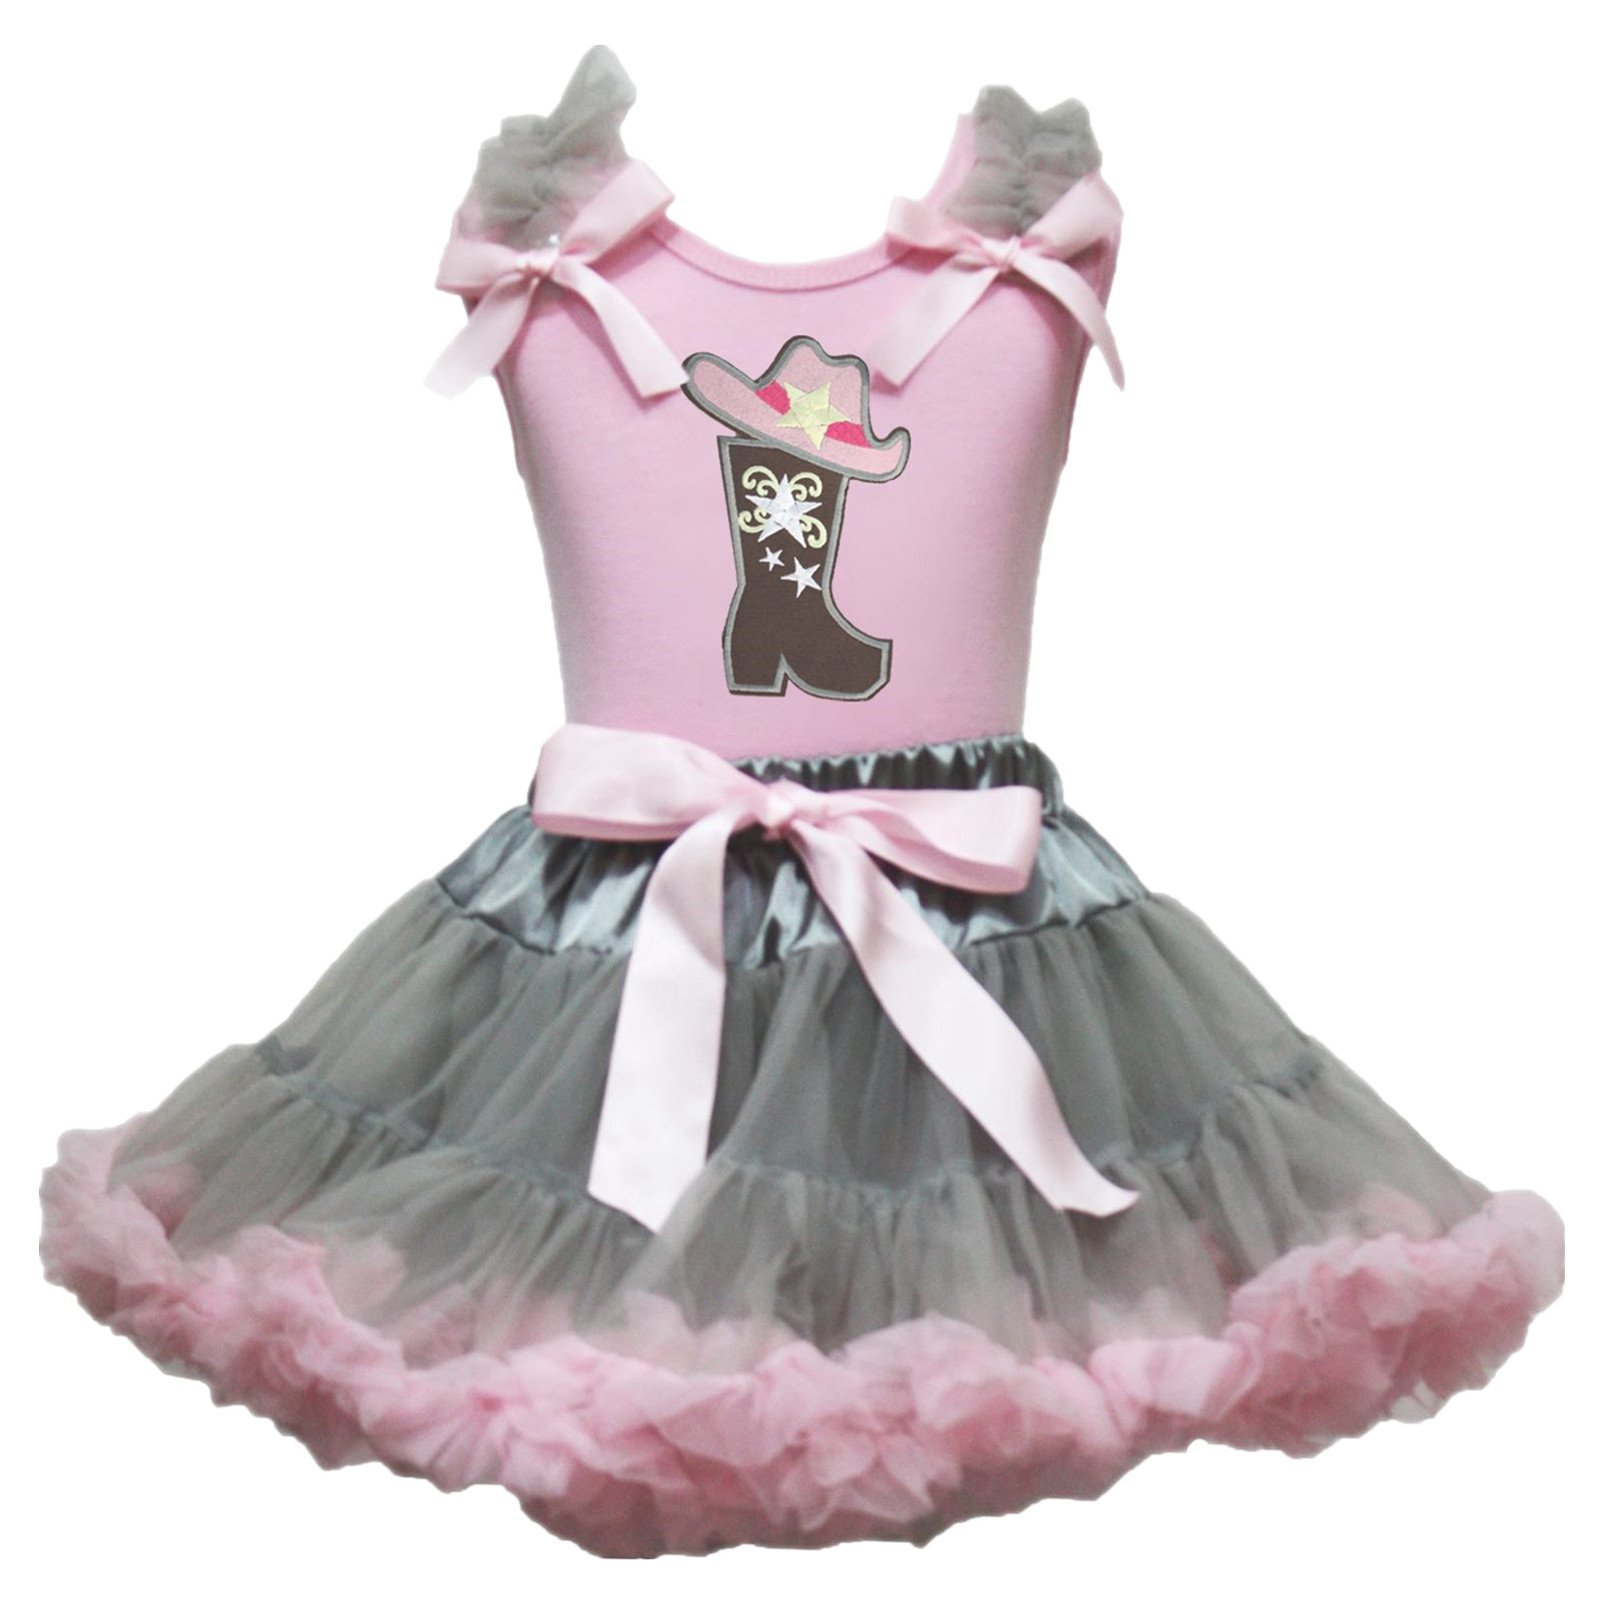 Petitebella Cowgirl Dress Boot and Hat Pink Shirt Grey Pink Skirt Outfit 1-8y (4-5 Years)